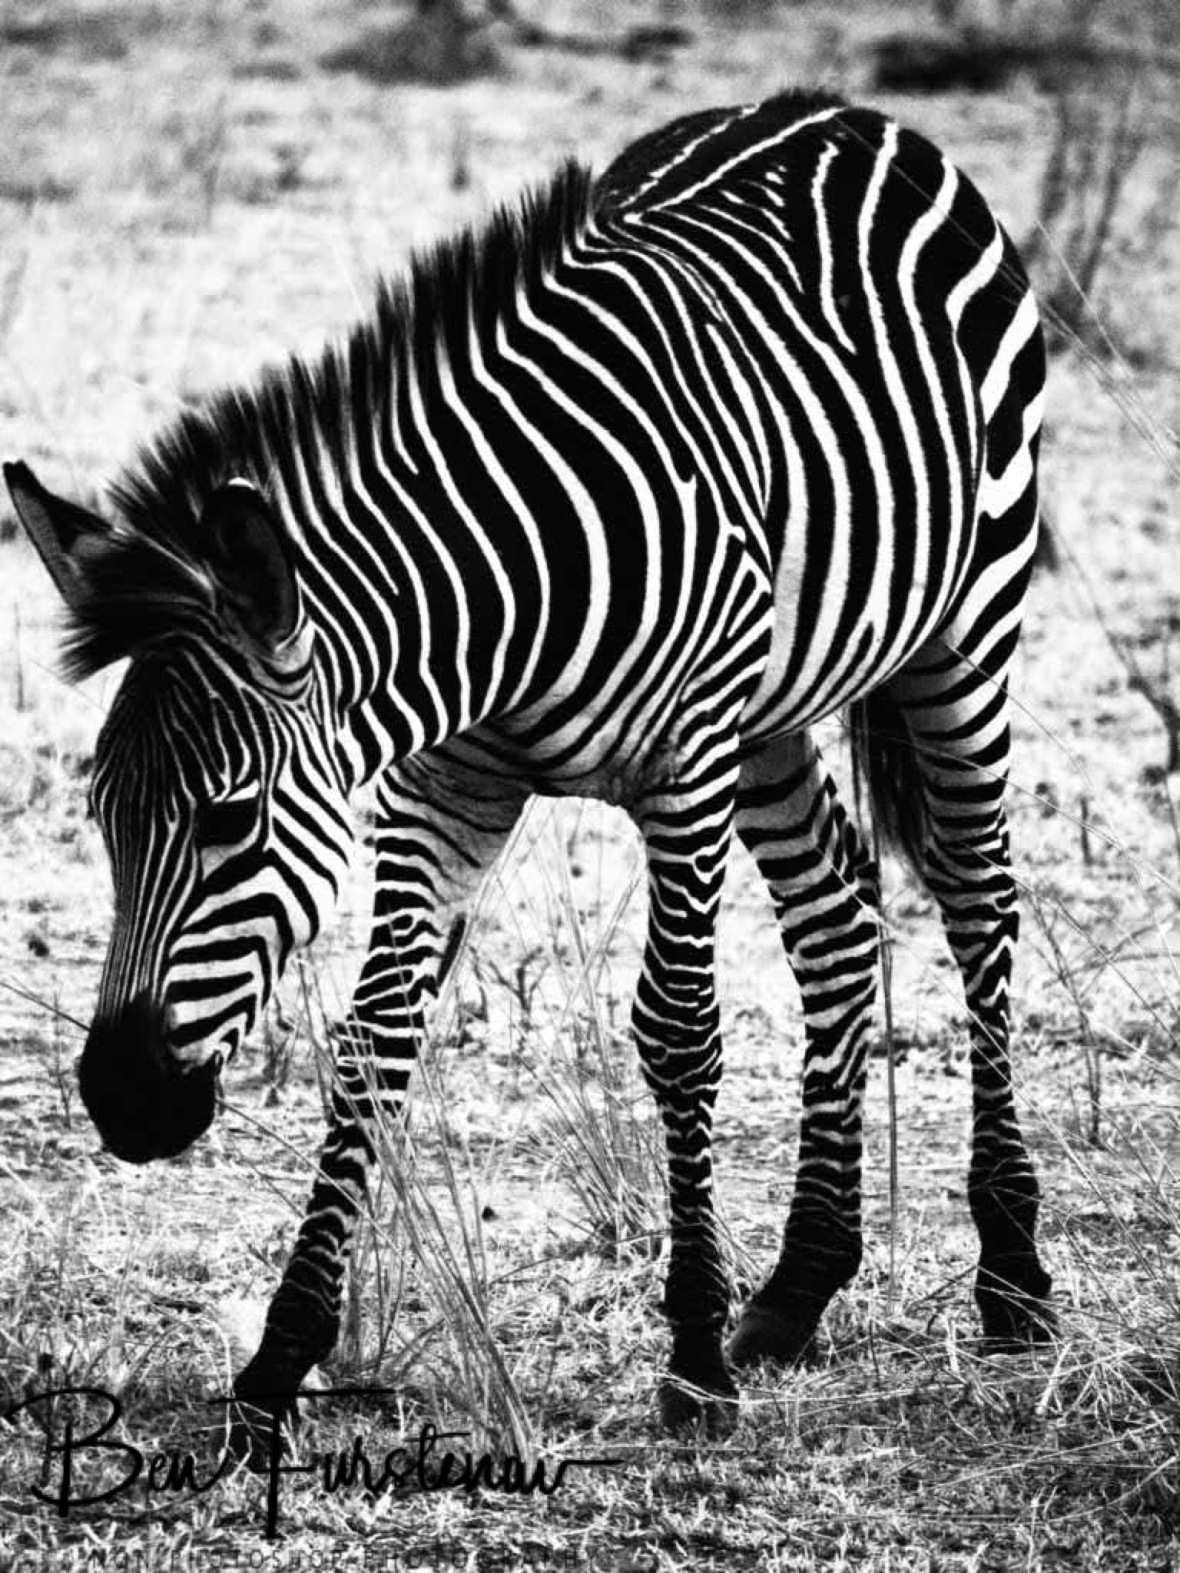 Zebra fowl in black and white, South Luangwa National Park, Zambia